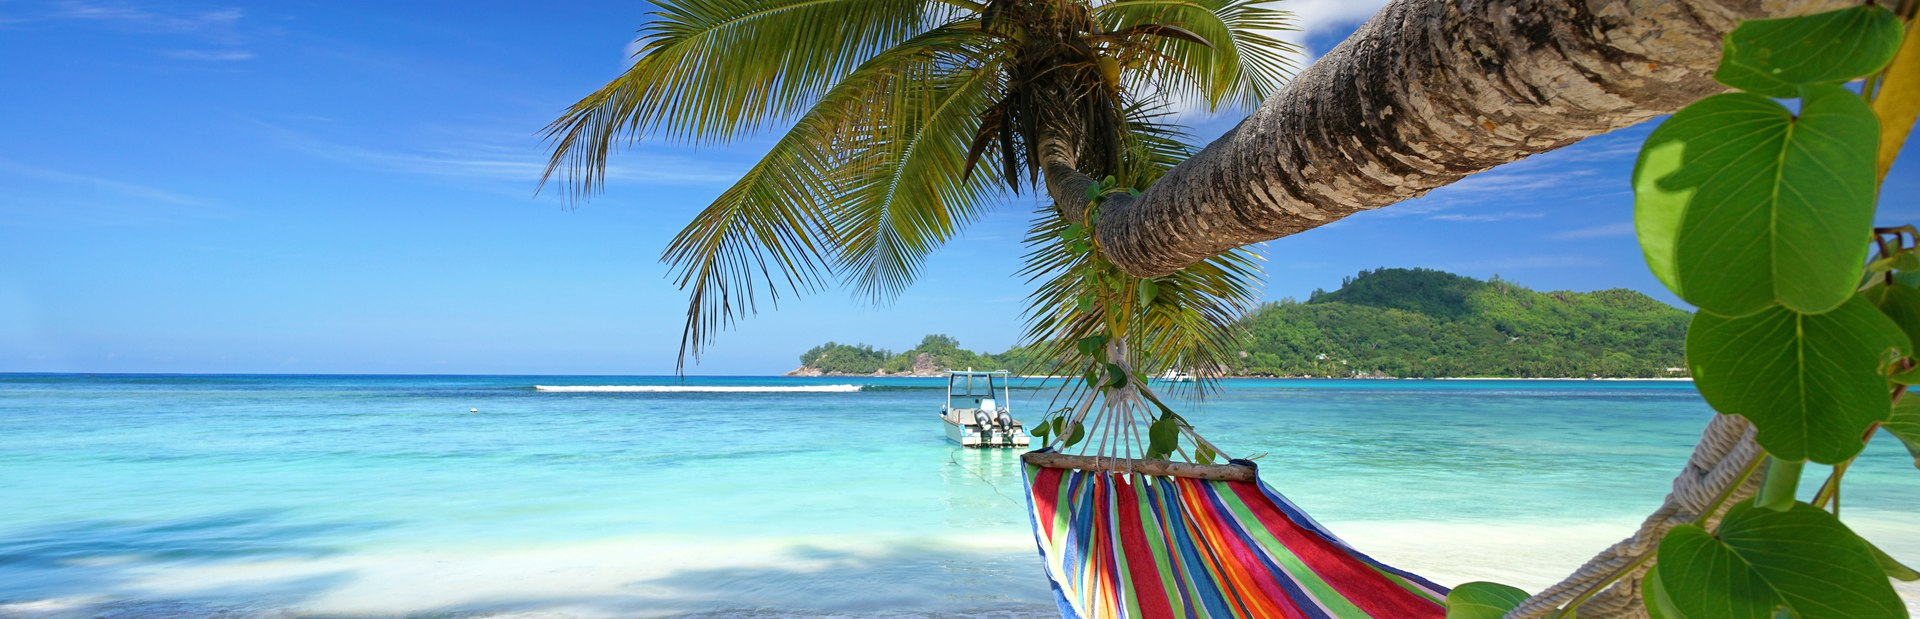 Things to see & do in the Indian Ocean